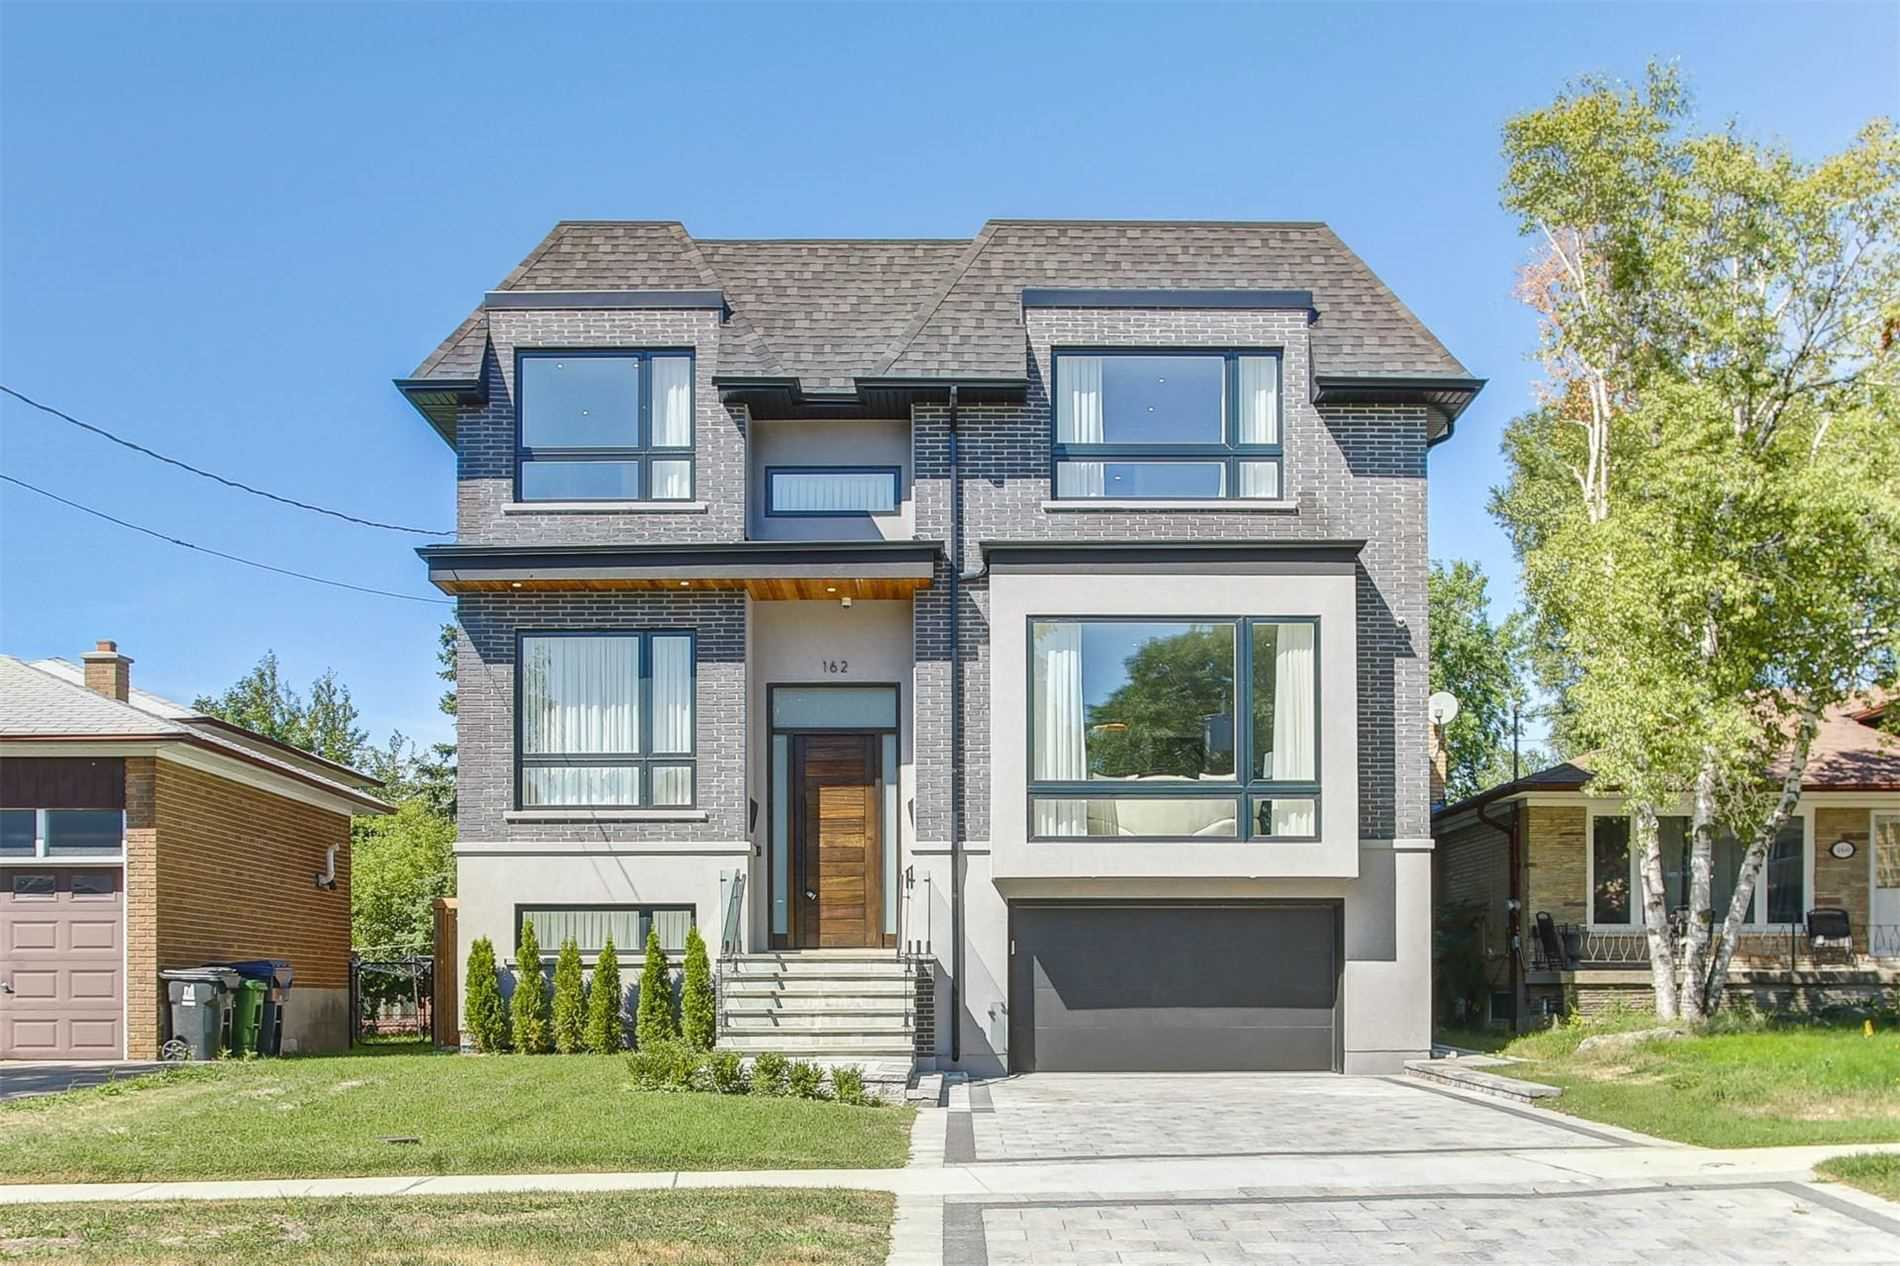 162 Caines Ave, Toronto, Ontario M2R2L5, 4 Bedrooms Bedrooms, 9 Rooms Rooms,7 BathroomsBathrooms,Detached,For Sale,Caines,C4910402